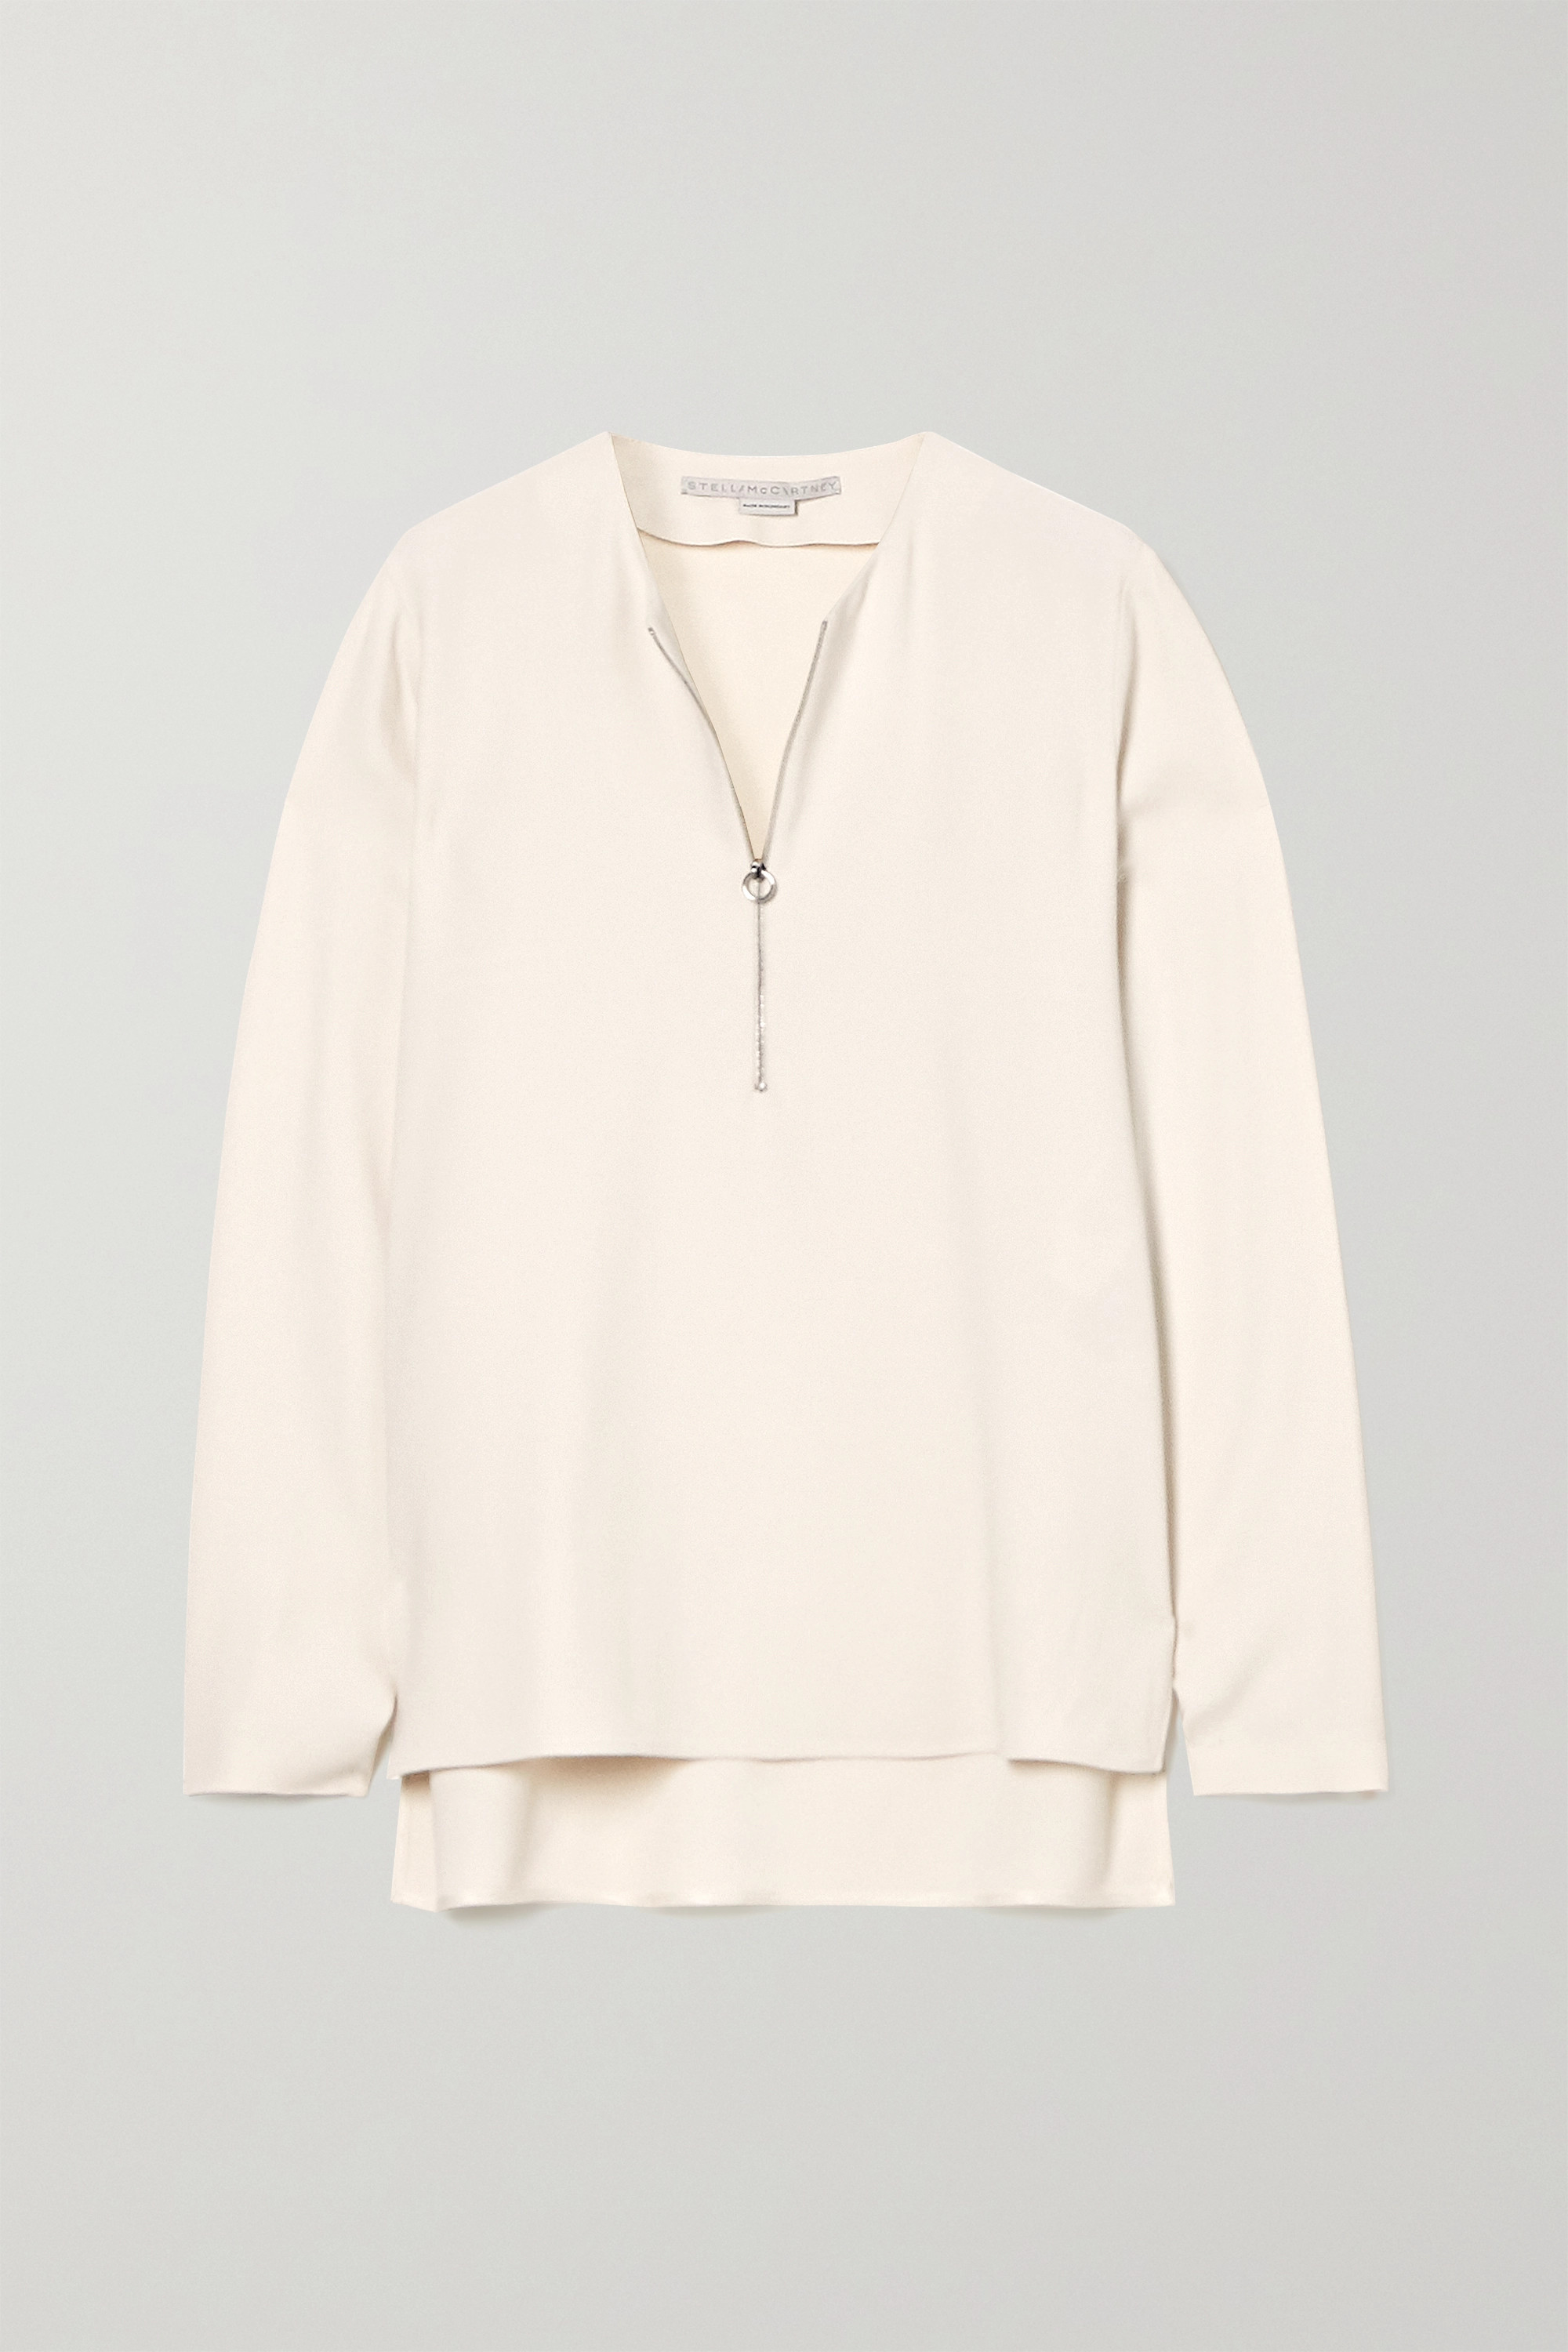 STELLA MCCARTNEY + NET SUSTAIN Arlesa crepe top